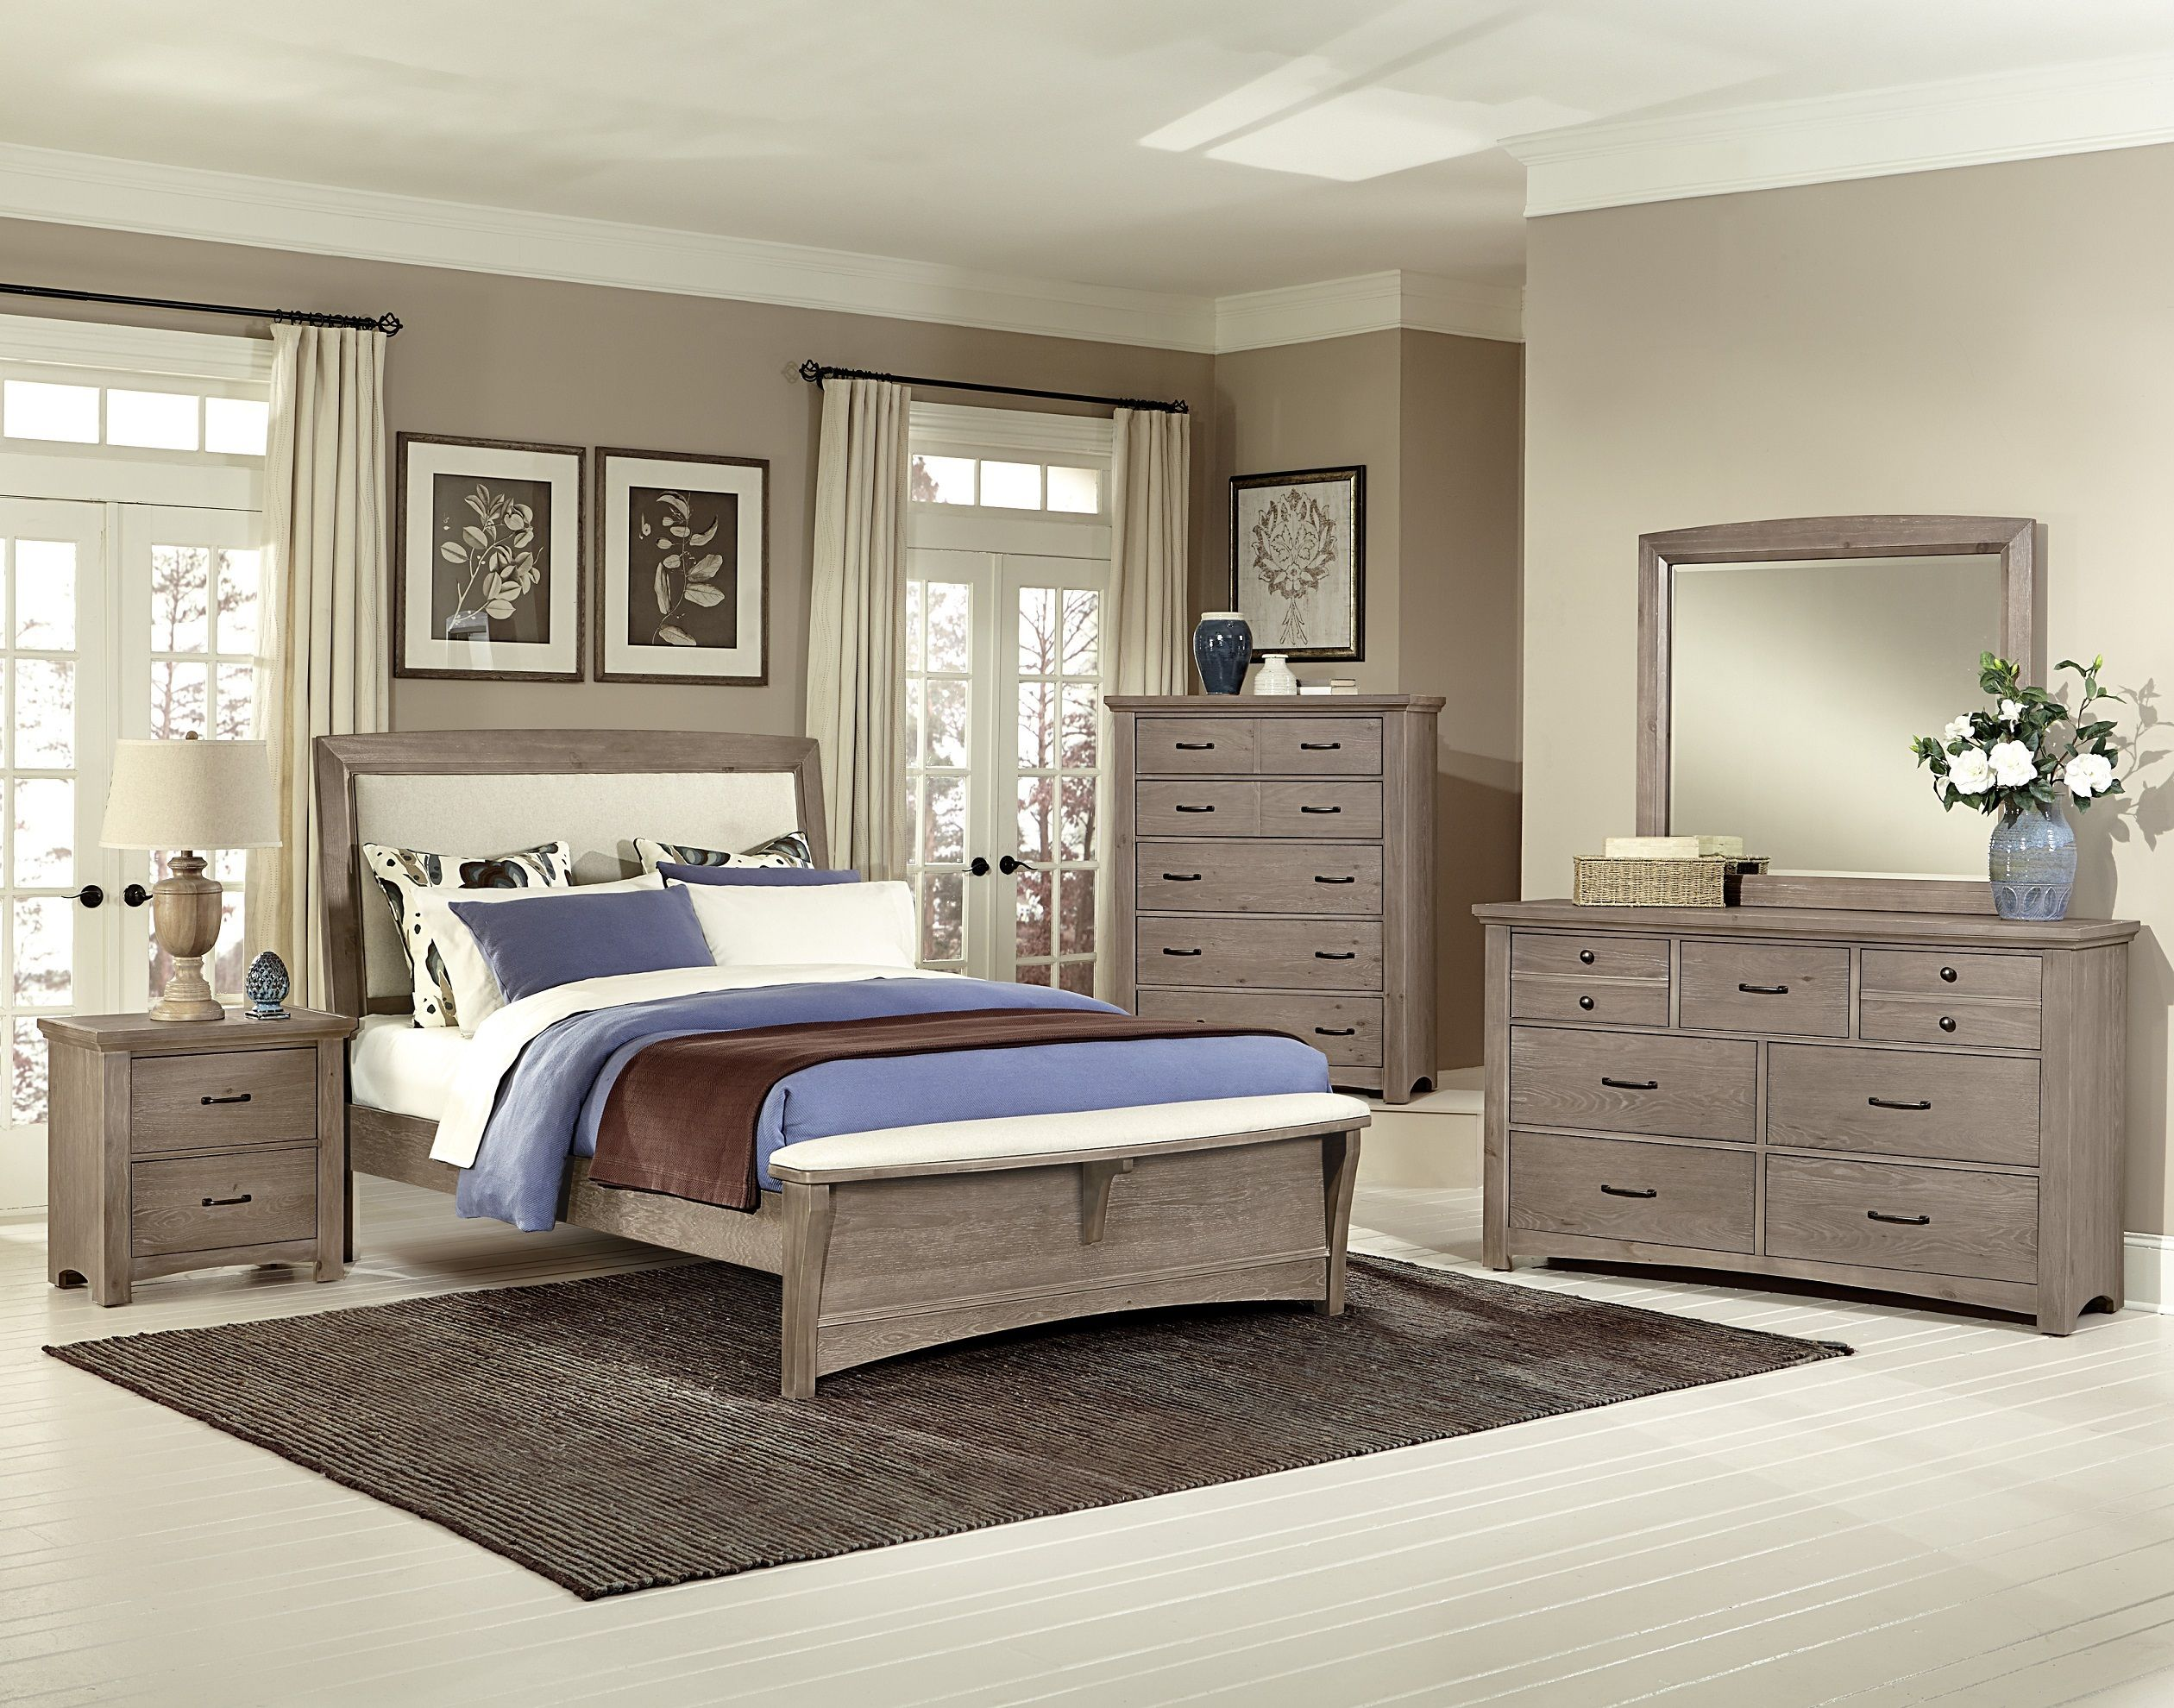 Transitions Driftwood Oak Upholstered Bedroom Set